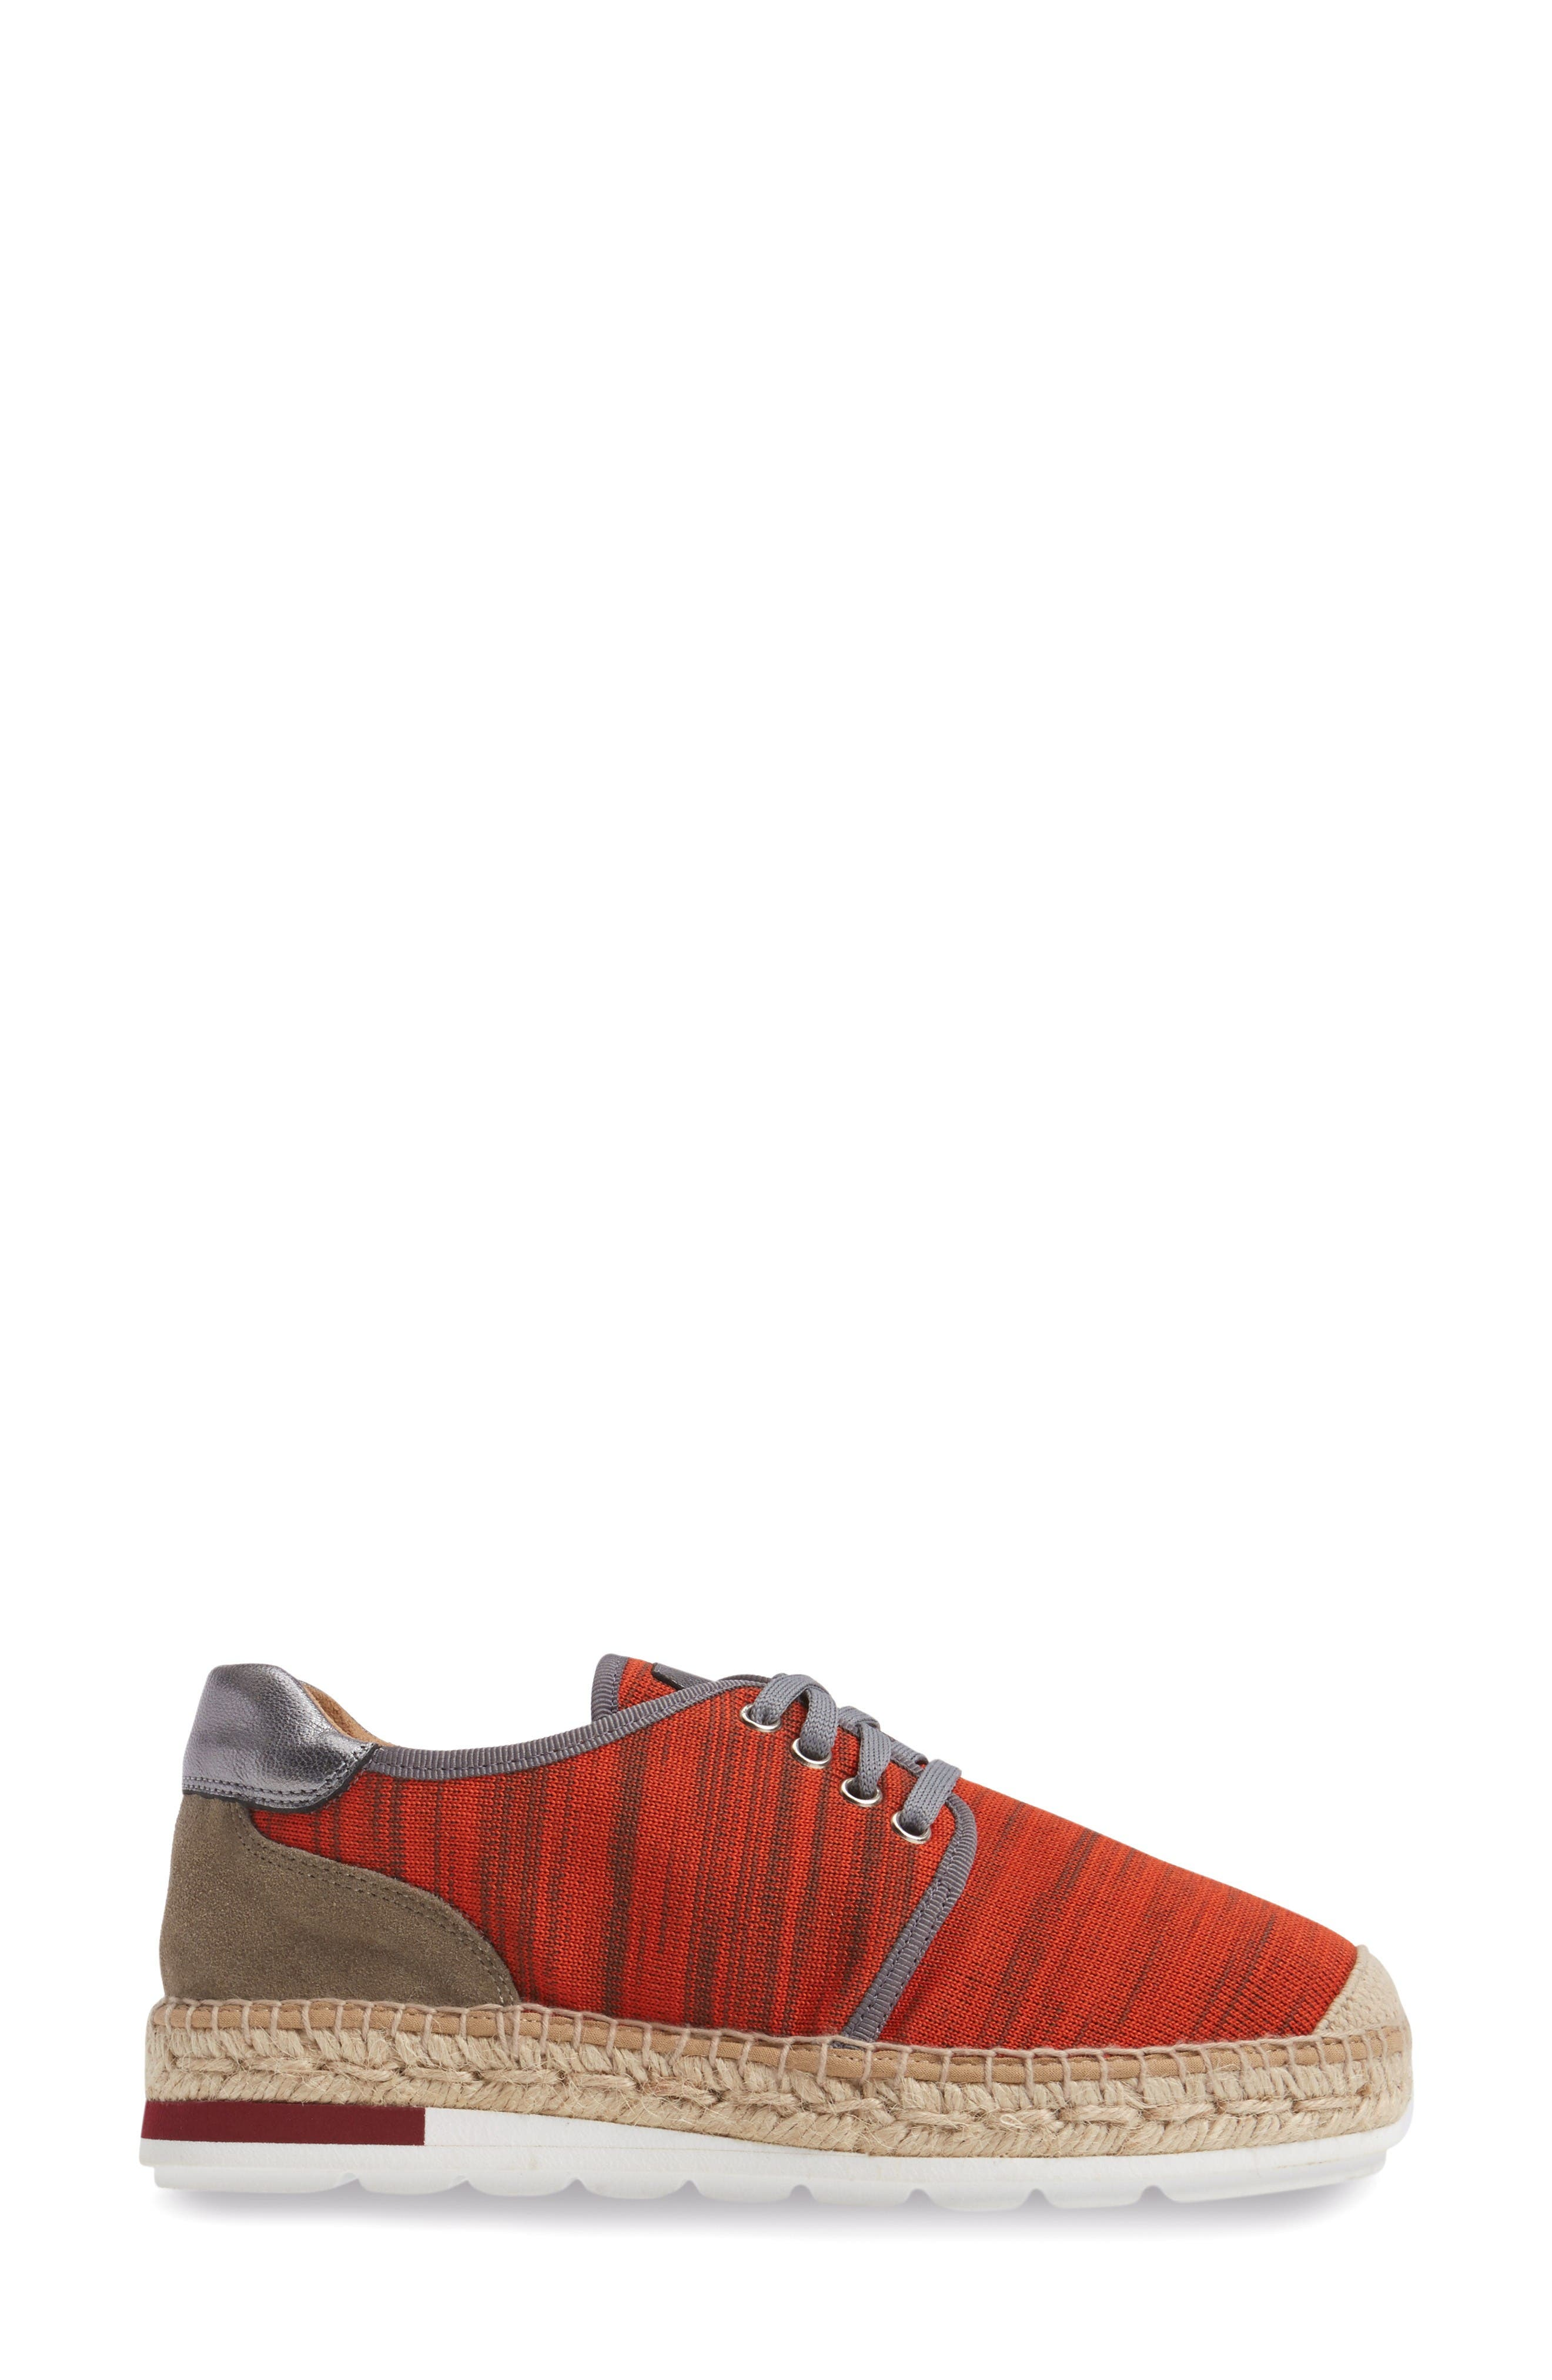 Alternate Image 3  - Bettye Muller Newport Mesh Espadrille Sneaker (Women)